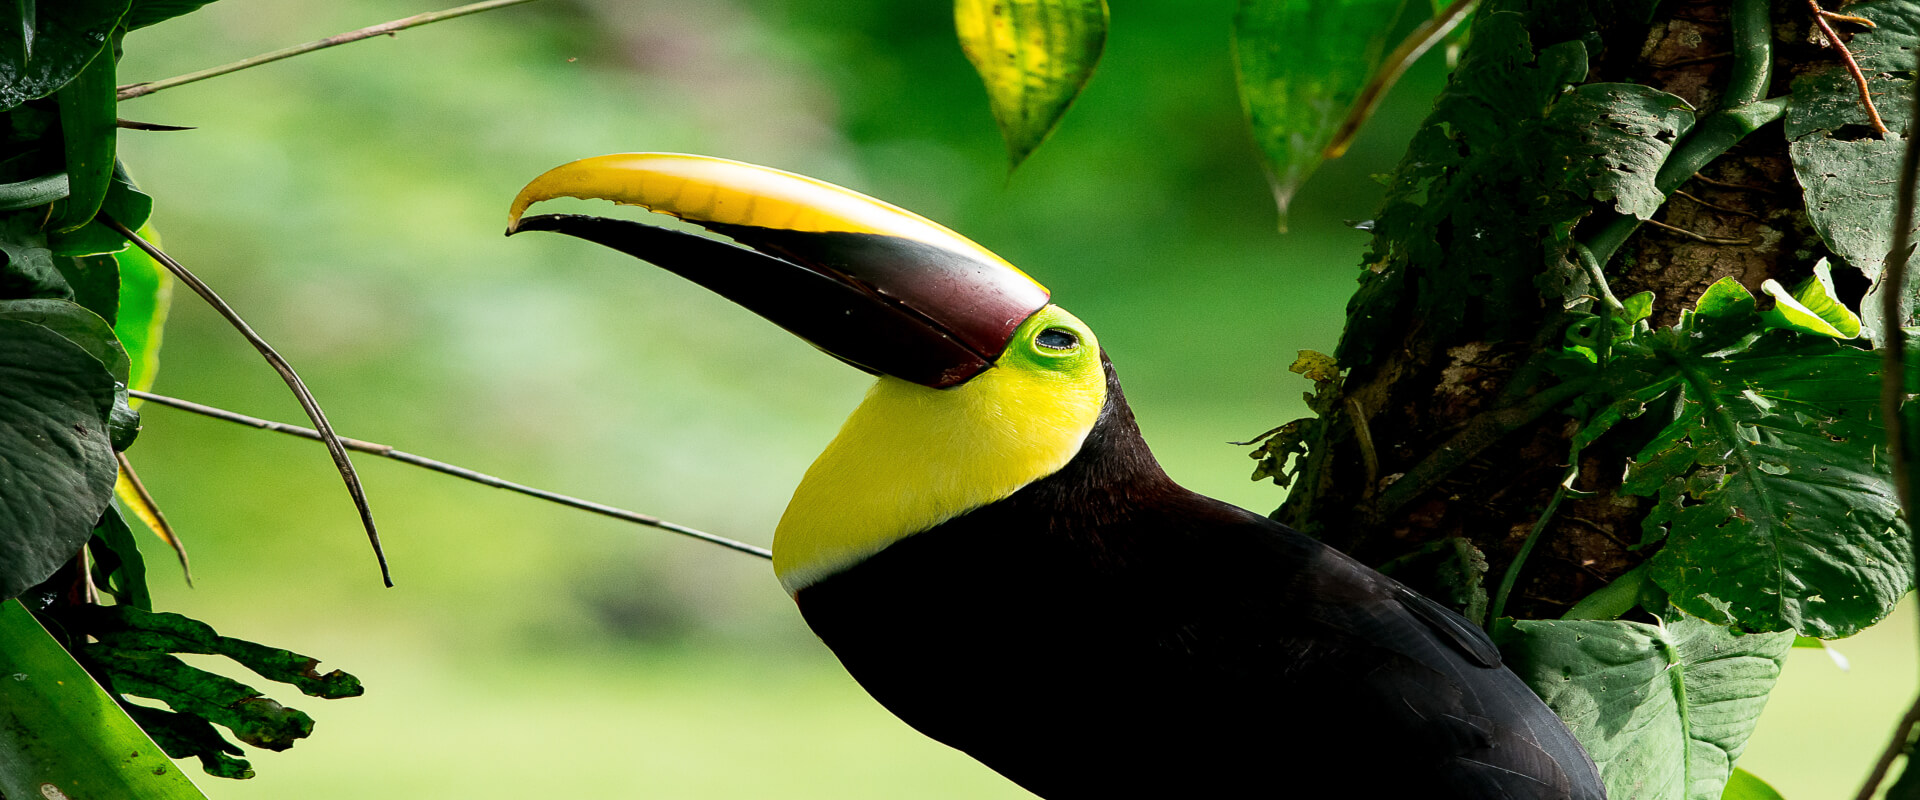 Drake Bay Bird Watching Tour | Costa Rica Jade Tours